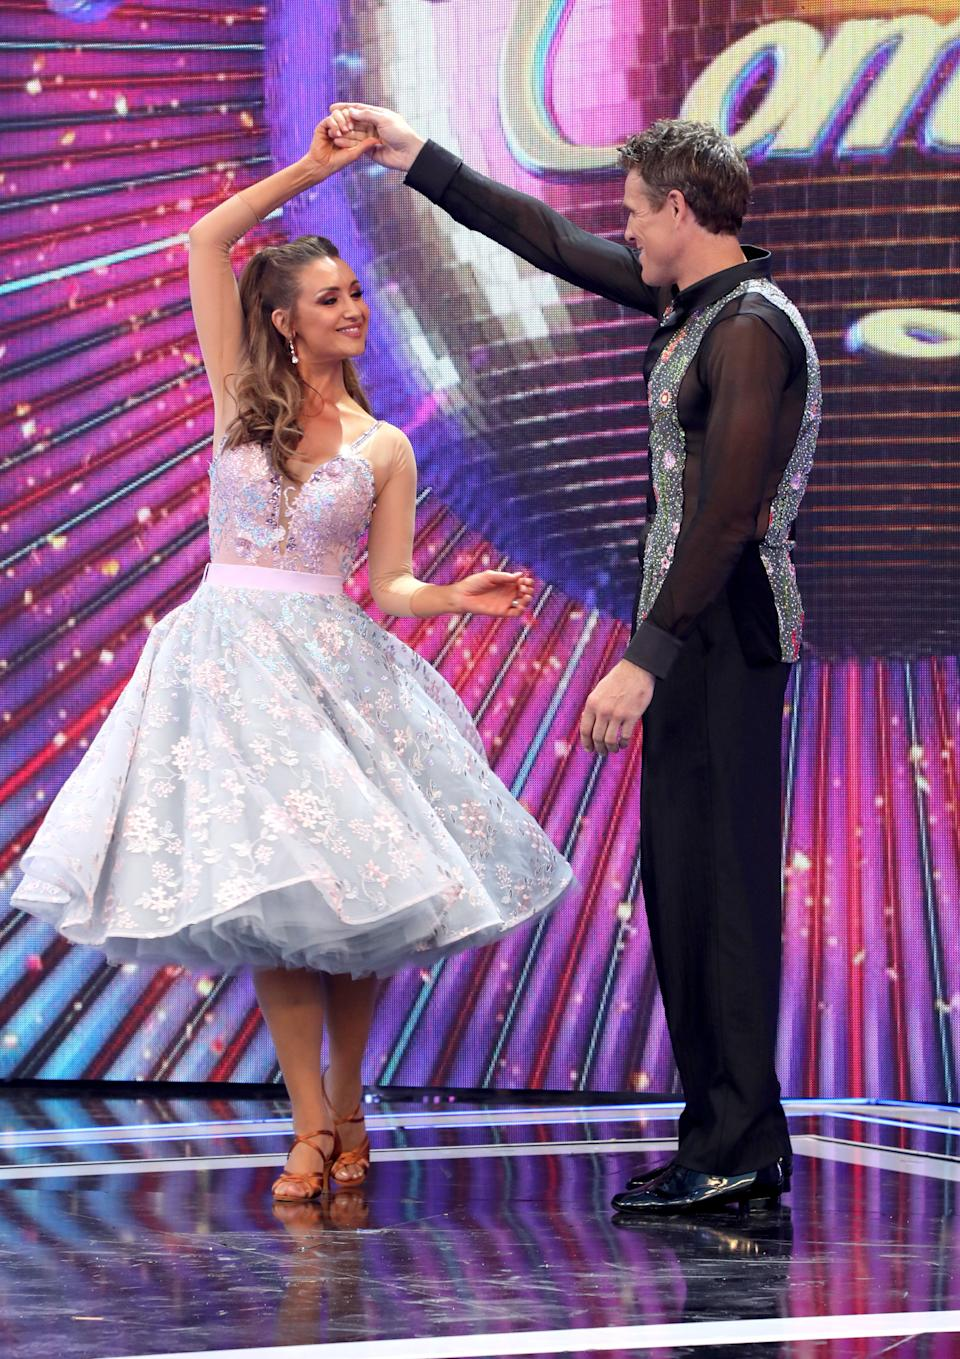 """LONDON, ENGLAND - AUGUST 26:  Catherine Tyldesley and James Cracknell on stage at the """"Strictly Come Dancing"""" launch show at Television Centre on August 26, 2019 in London, England. (Photo by Lia Toby/Getty Images)"""